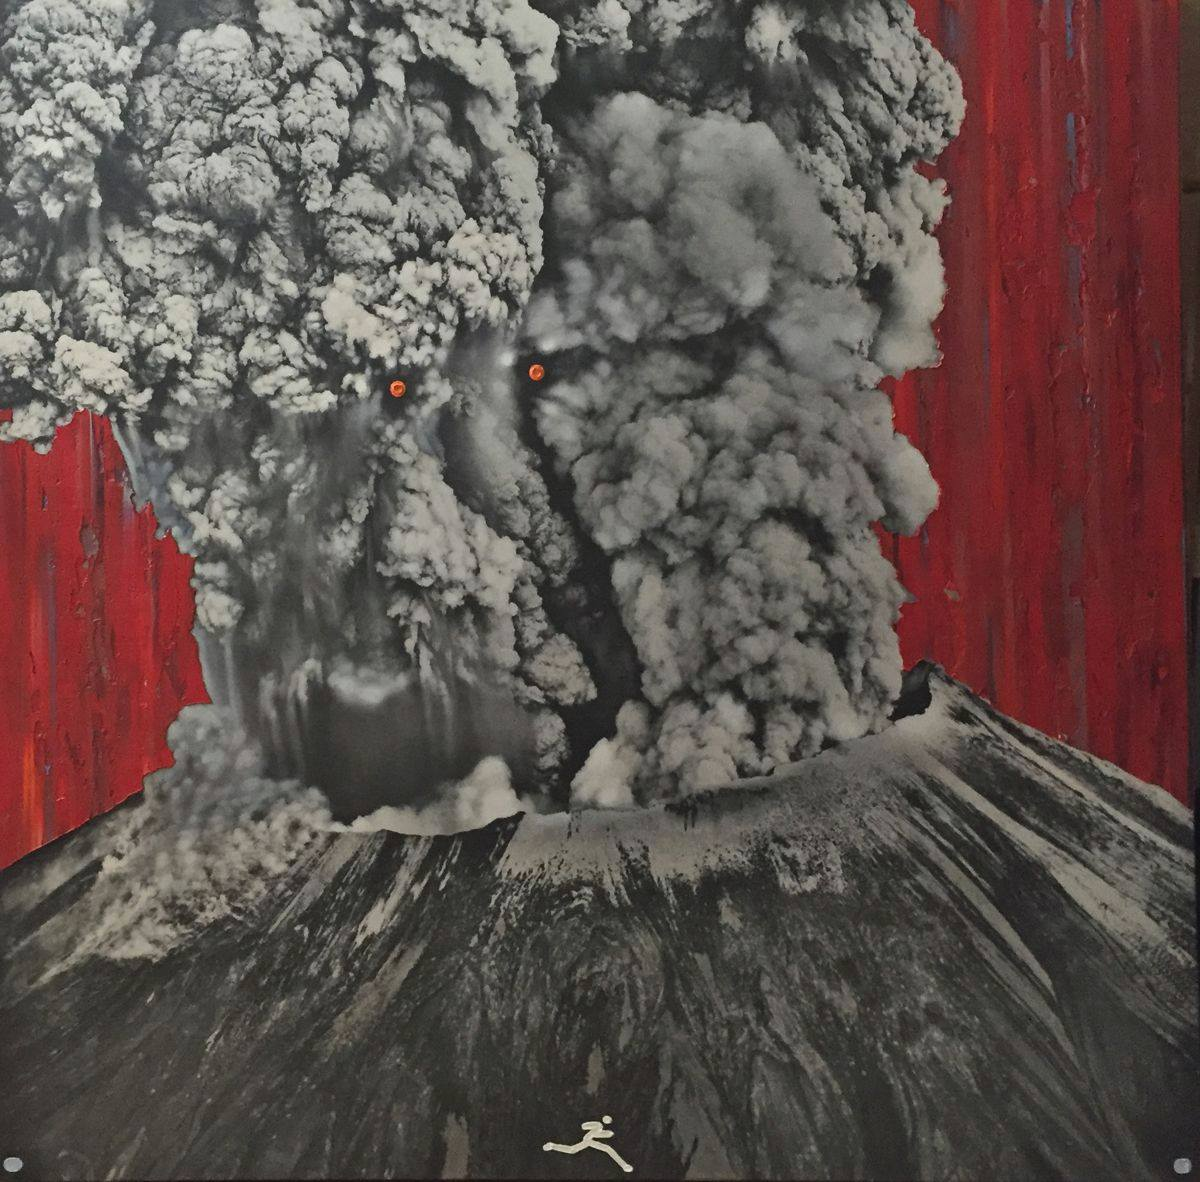 Square painting of the eruption of Mt. Saint Helens. A vivid thick red paint covers the background with thin vertical lines of brown, gray, and blue paint over the red. The black and white image of the volcano is overlaid onto the red background. Sharp lines outline the edges, rim, and crevices of the volcano. A layer of white ash lines the rim and some of the slopes. As the large plume of ash billows out from the center and reaches to the top of the frame, some areas are blurred from the movement of the eruption. In the center, two orange circles form eyes on top of a distorted facial image formed by the ash. The bottom of the frame has a gray dot in each corner, and in the middle a gray stick figure appears to be running towards the right corner.